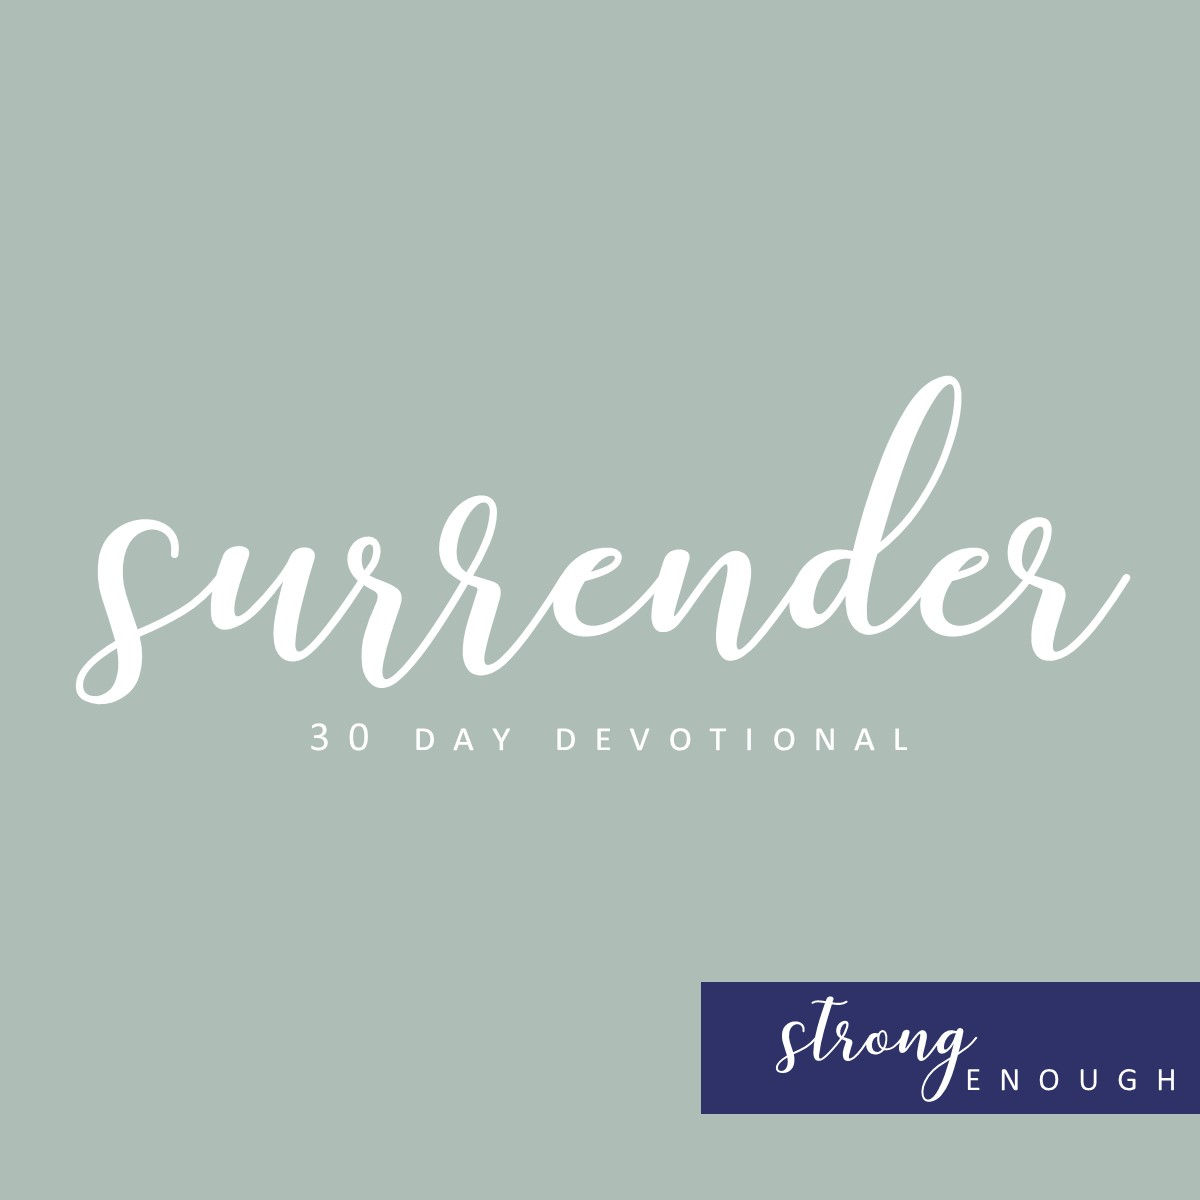 WOMEN'S 30 DAY DEVOTIONAL - Next Group starts Sept 9th! Life can be hard but with faith you are strong enough to find peace in struggle. Join us as we walk through 30 days of scripture on strength together. Group includes a private Facebook community, a downloadable 30 day workbook, and more. Group is hosted by Val Edwards and Jill Minton.